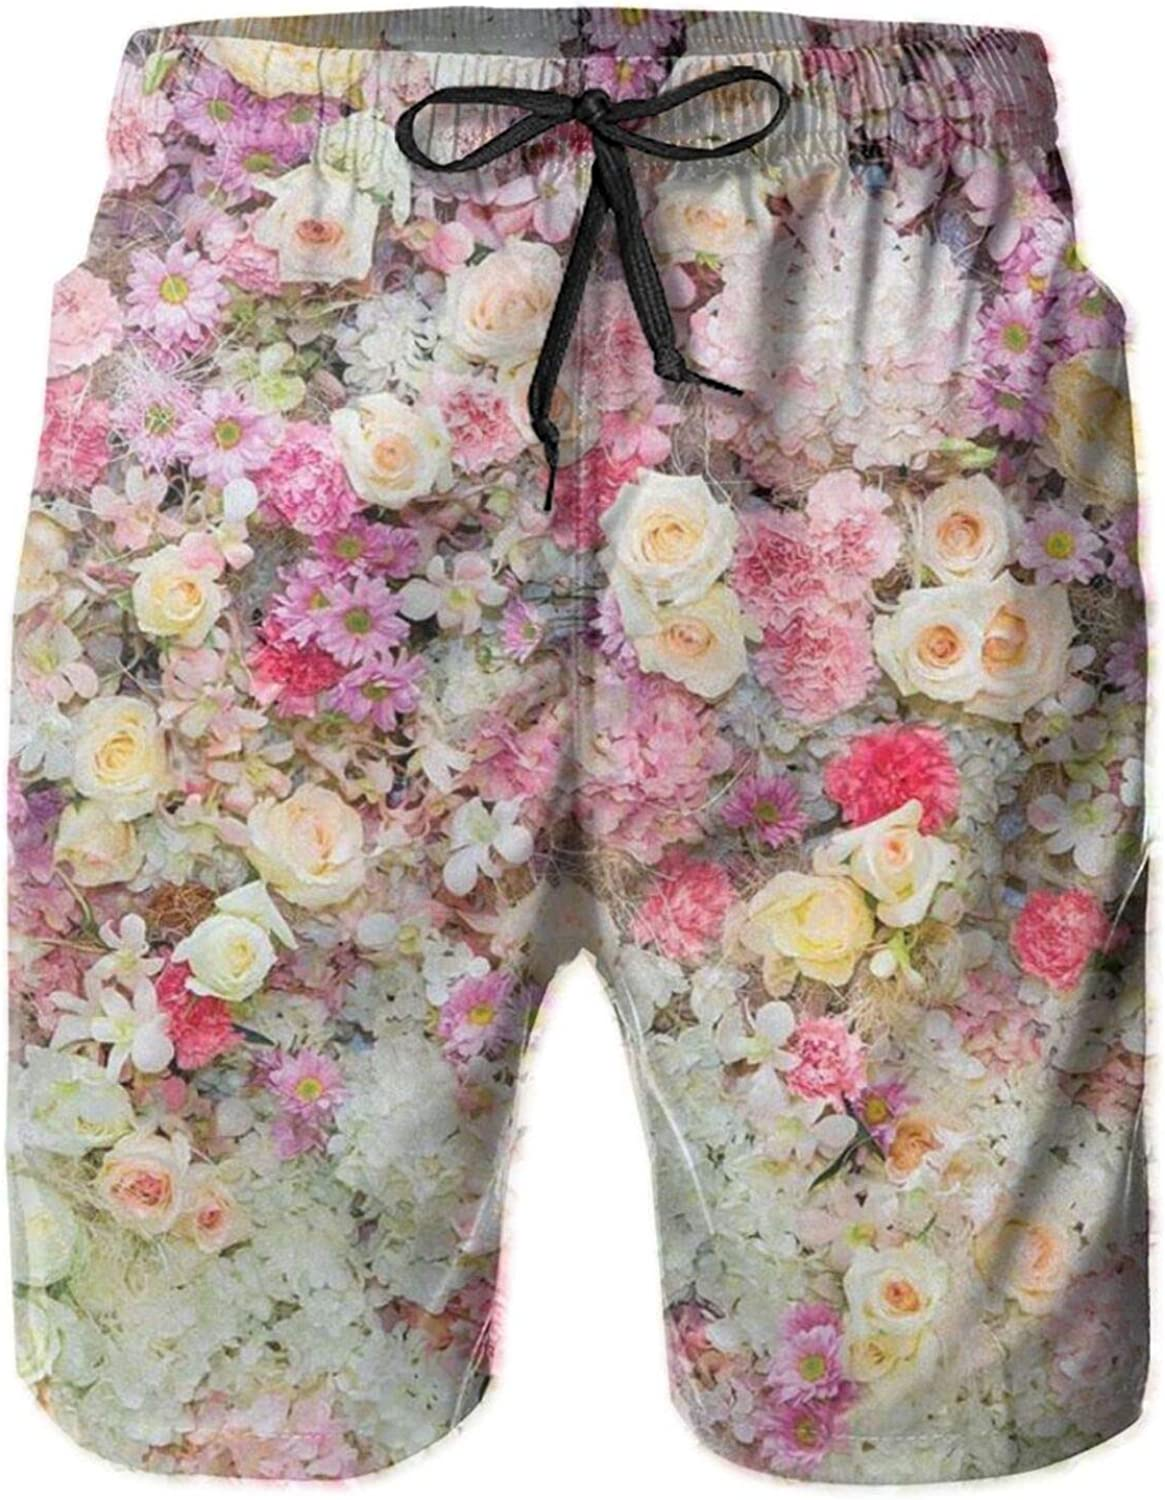 Mens 100% Polyester Spring Floral Luxury Trunks Swim Large special price Casual Shor Board